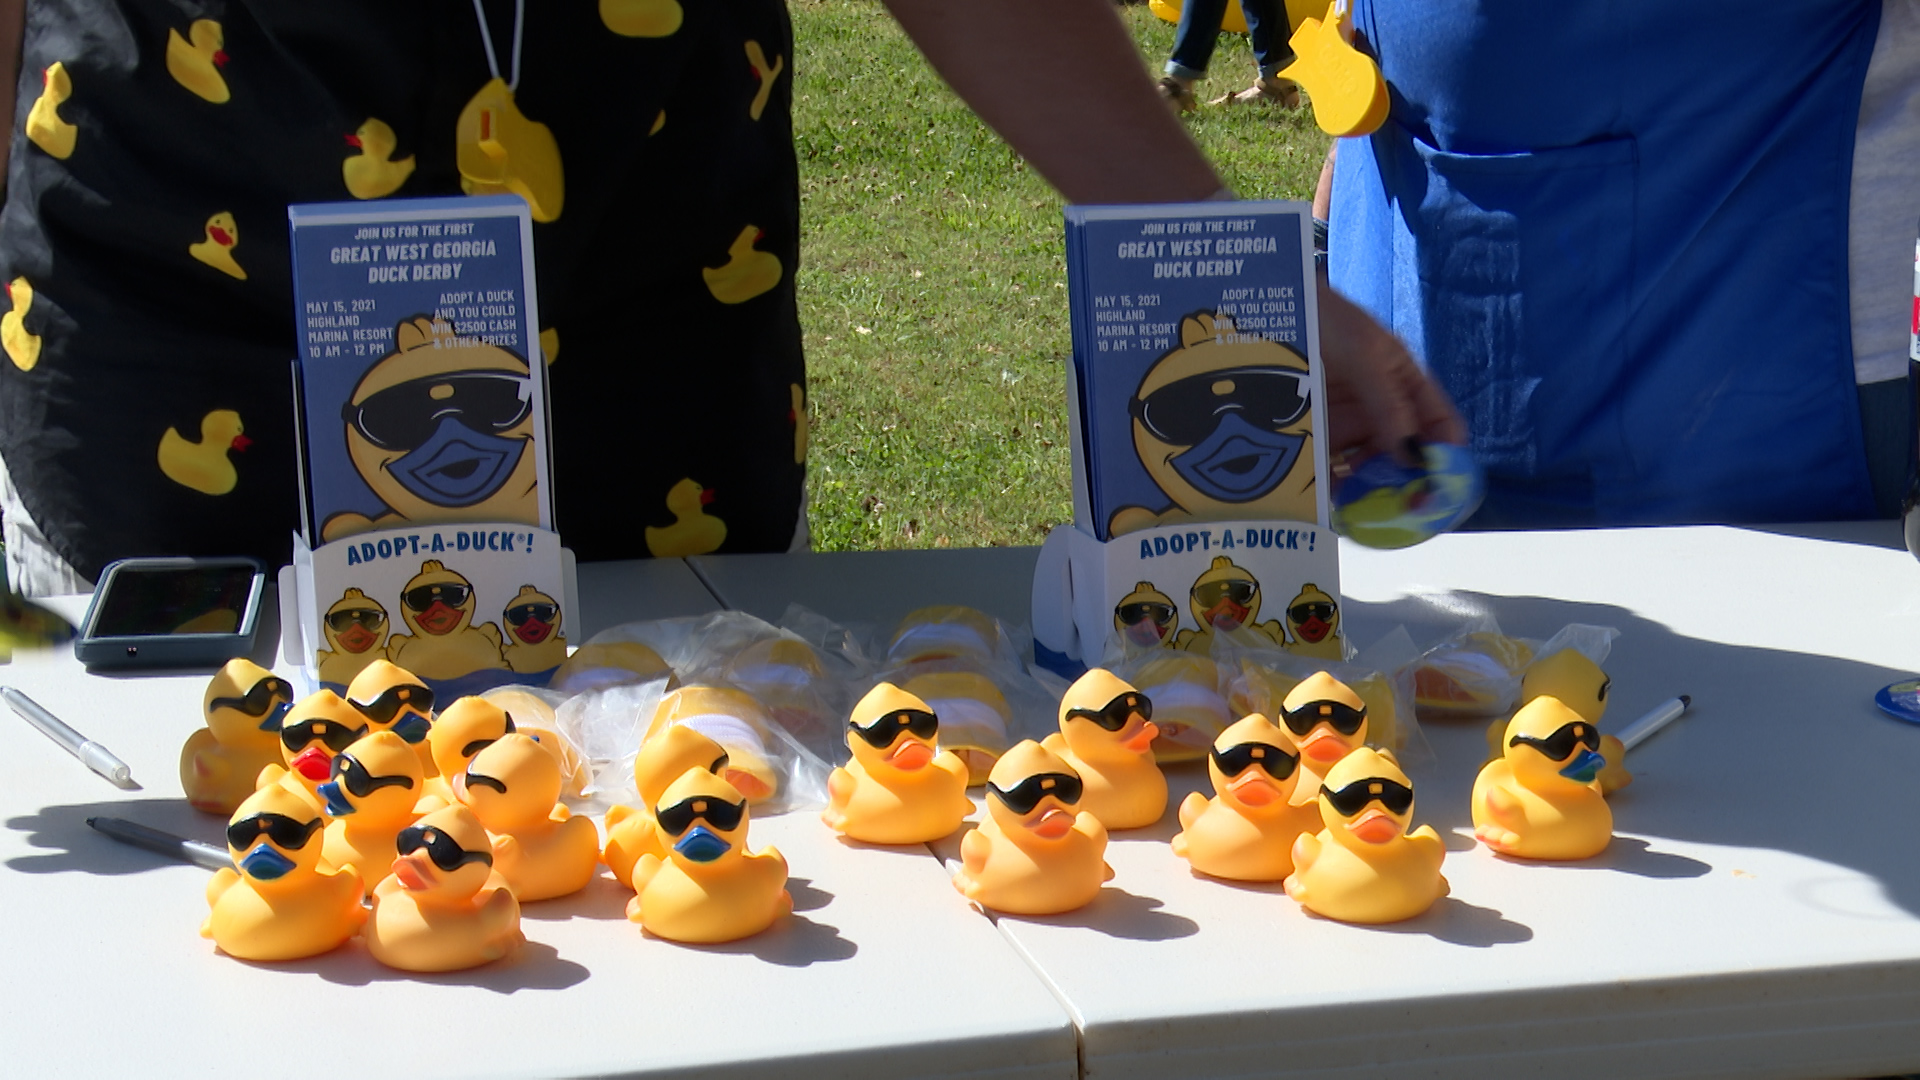 West Georgia Duck Derby